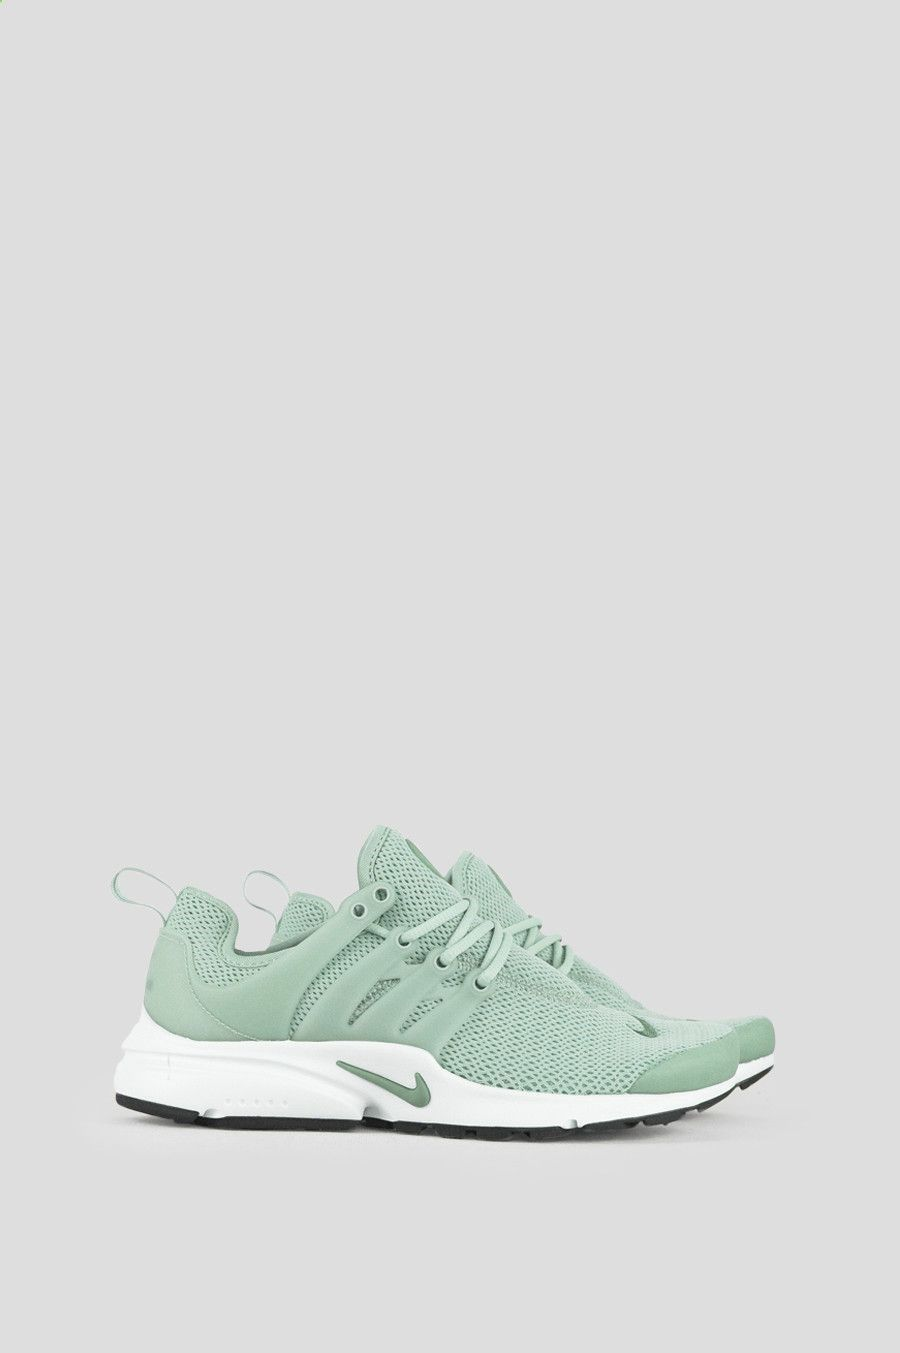 The Nike Air Presto Womens Shoe is inspired by the comfort